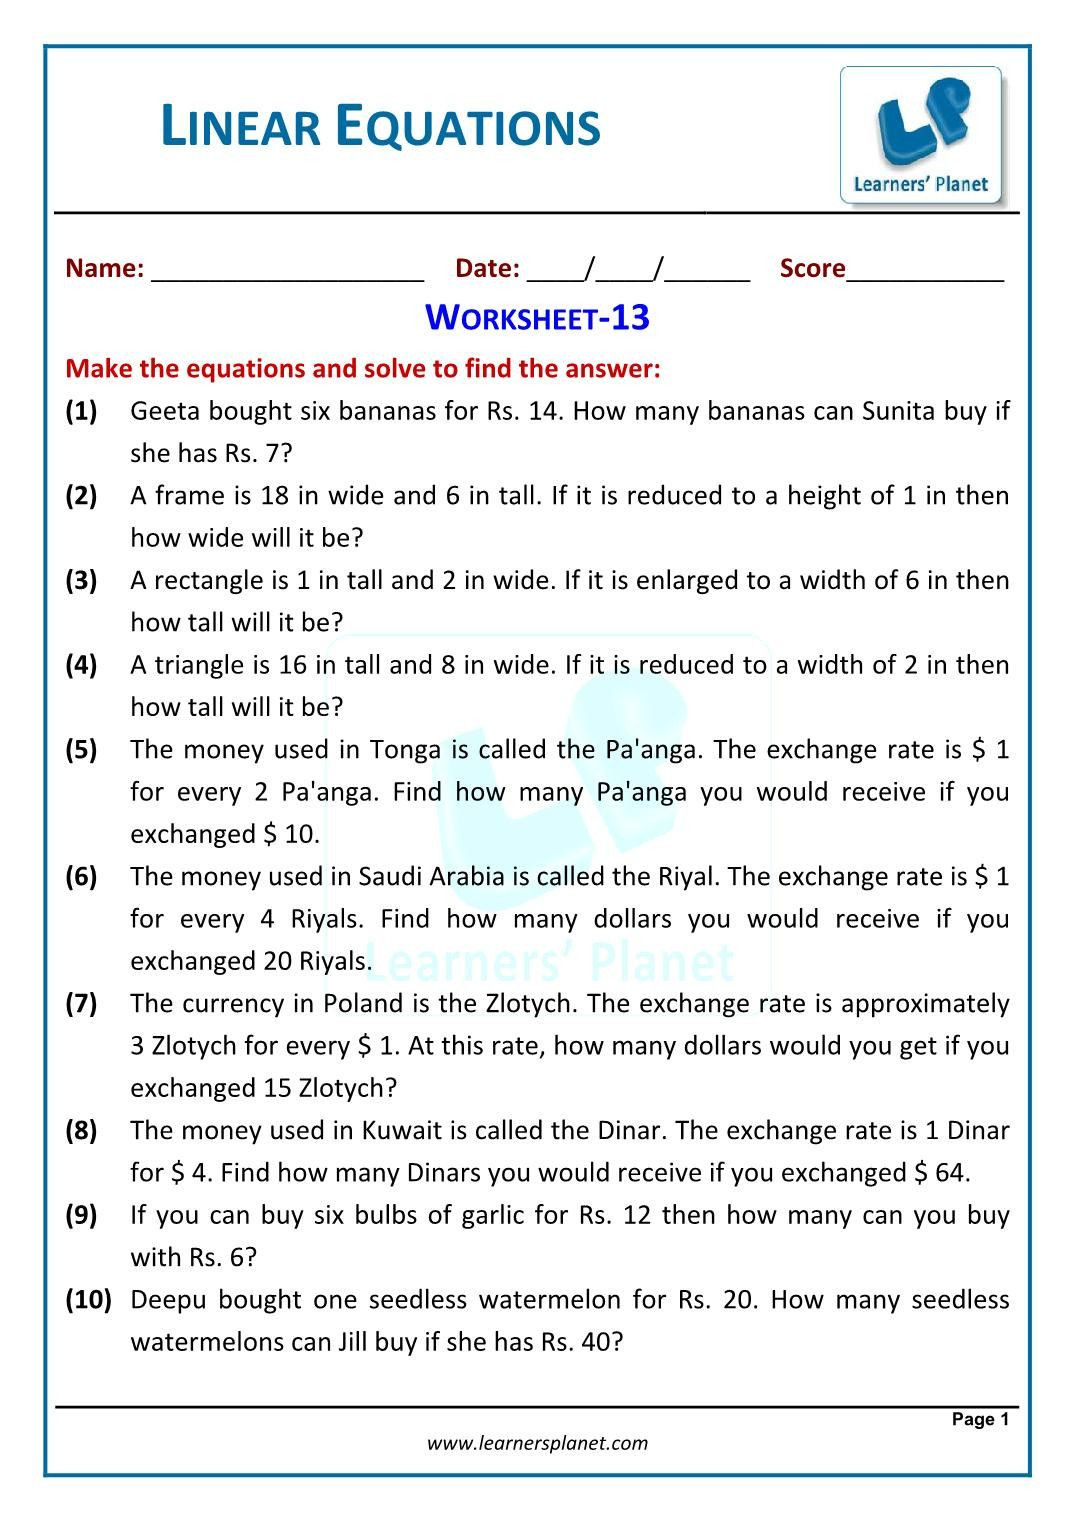 Linear Word Problems Worksheet 3 Inequality Word Problems Worksheet 7th Grade In 2020